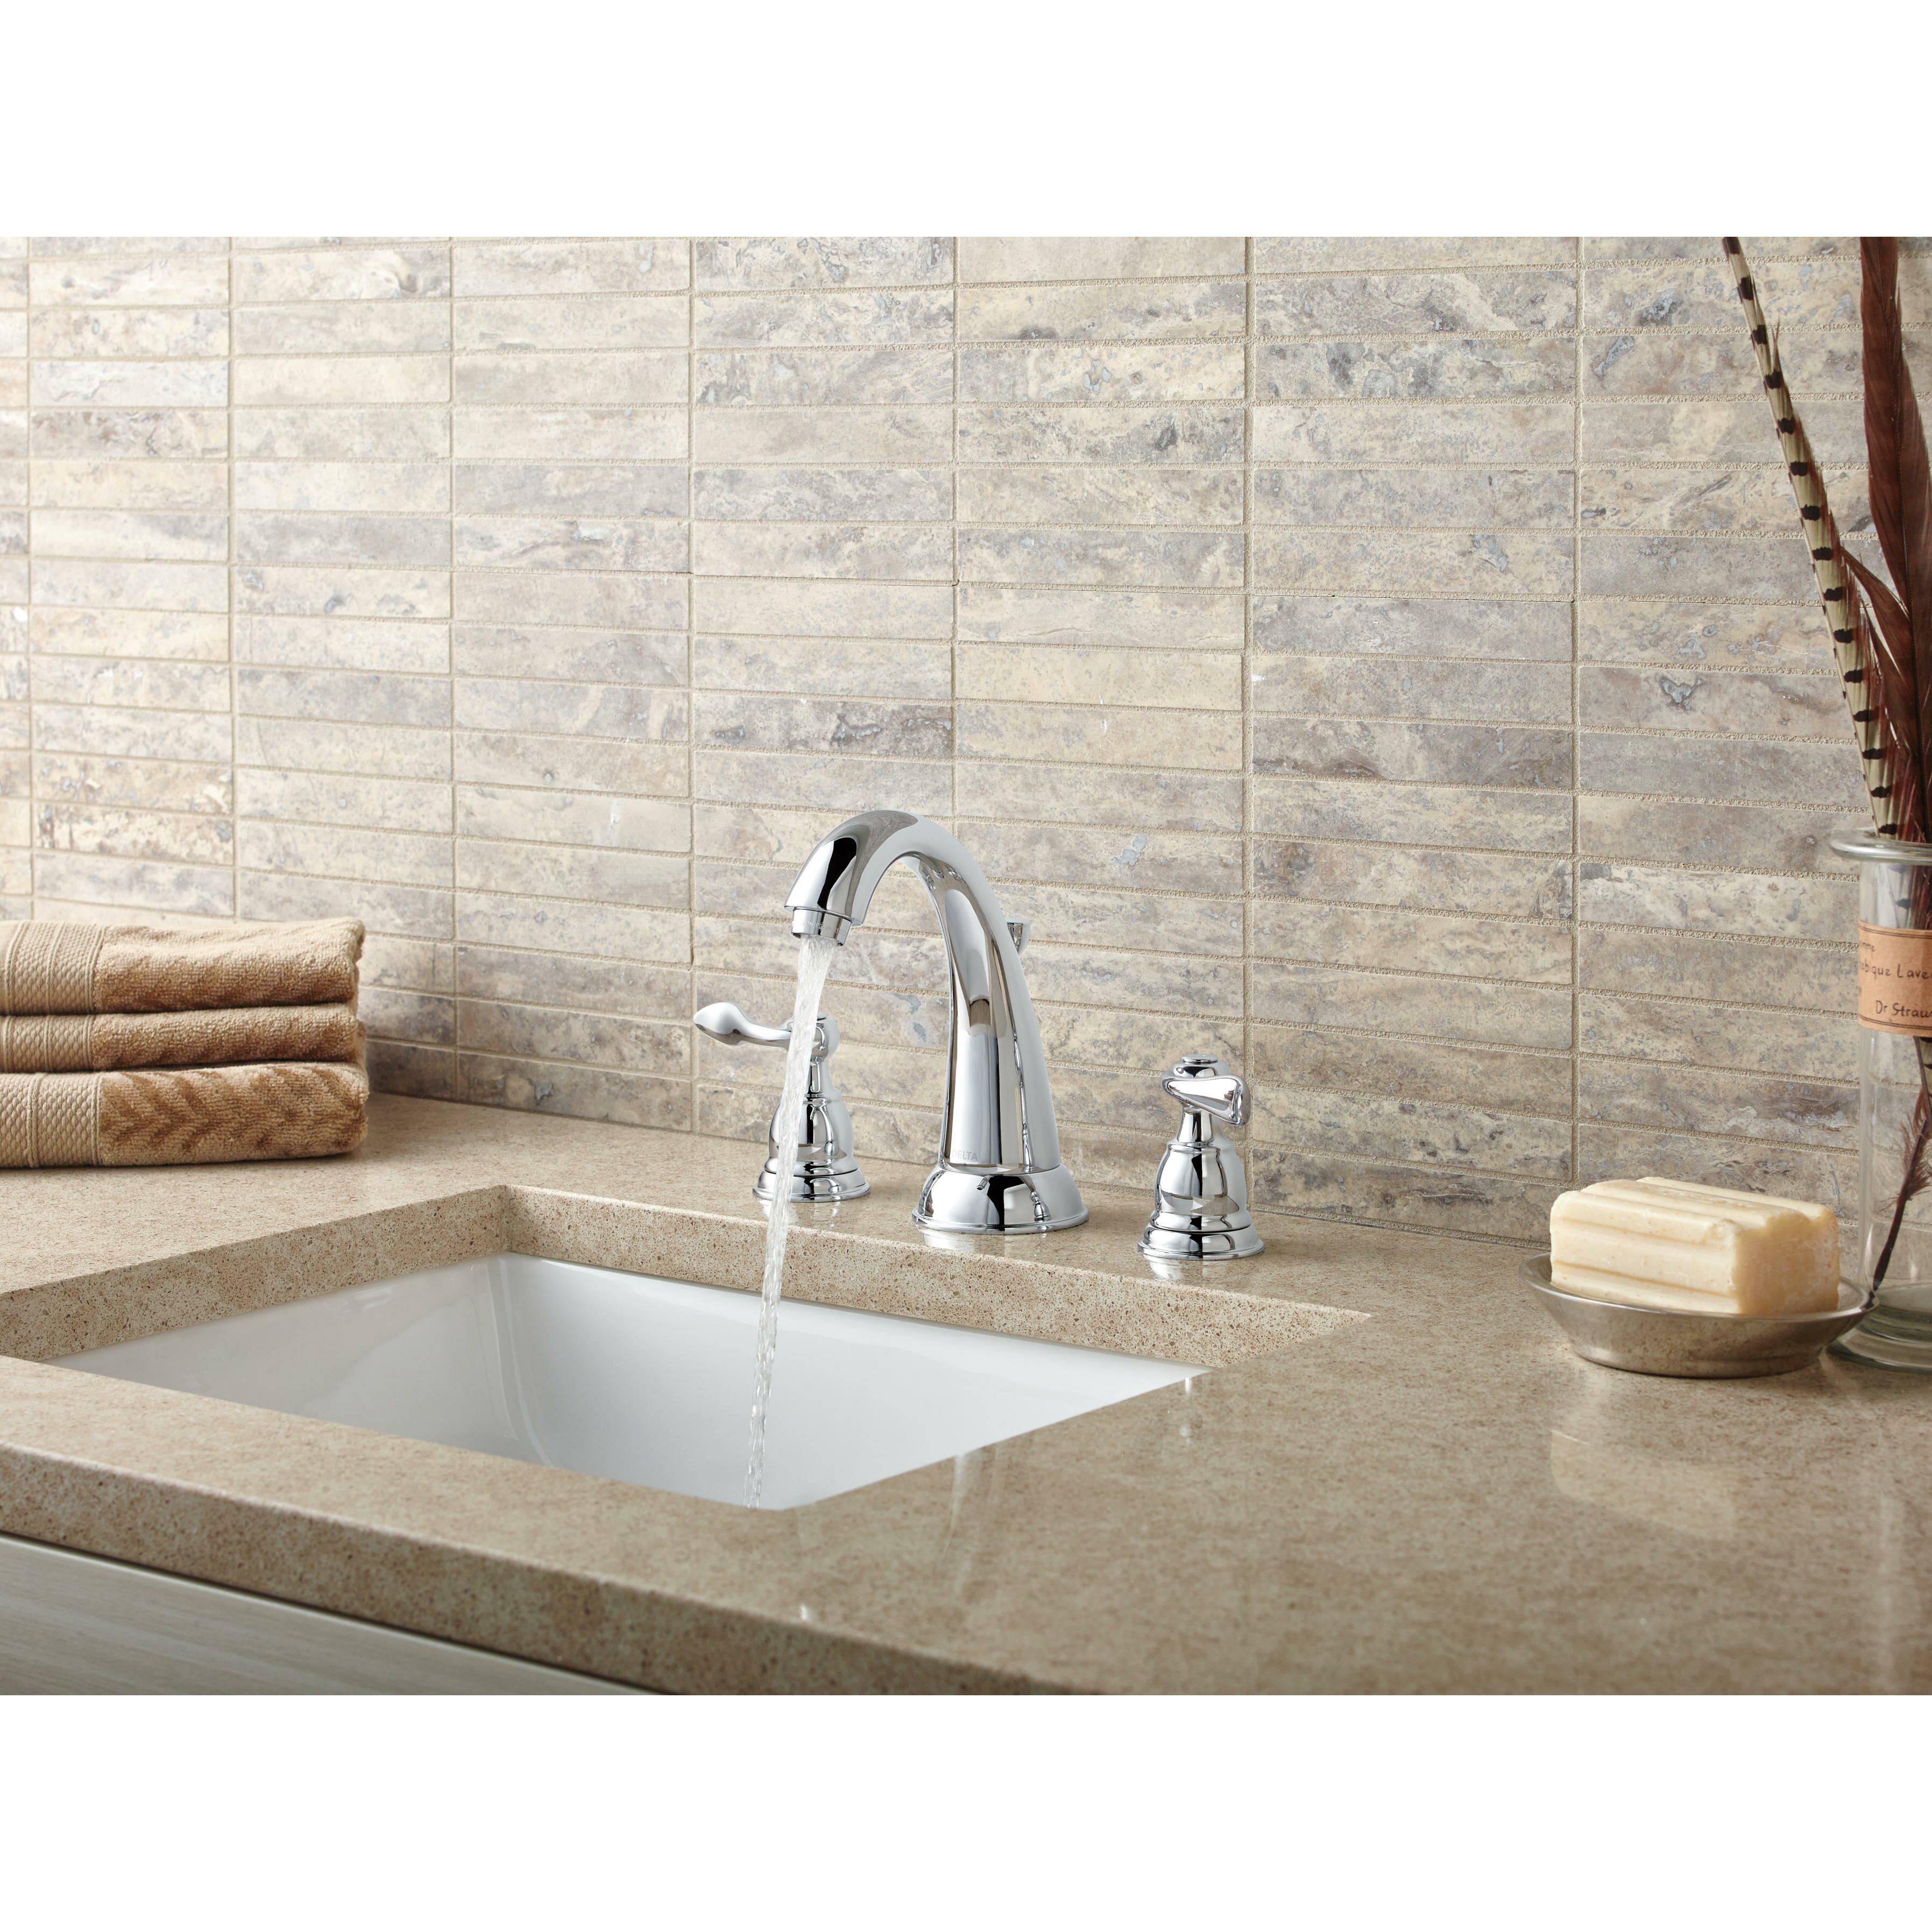 delta bathroom with purchase assembly windemere faucet free faucets pin chrome drain centerset